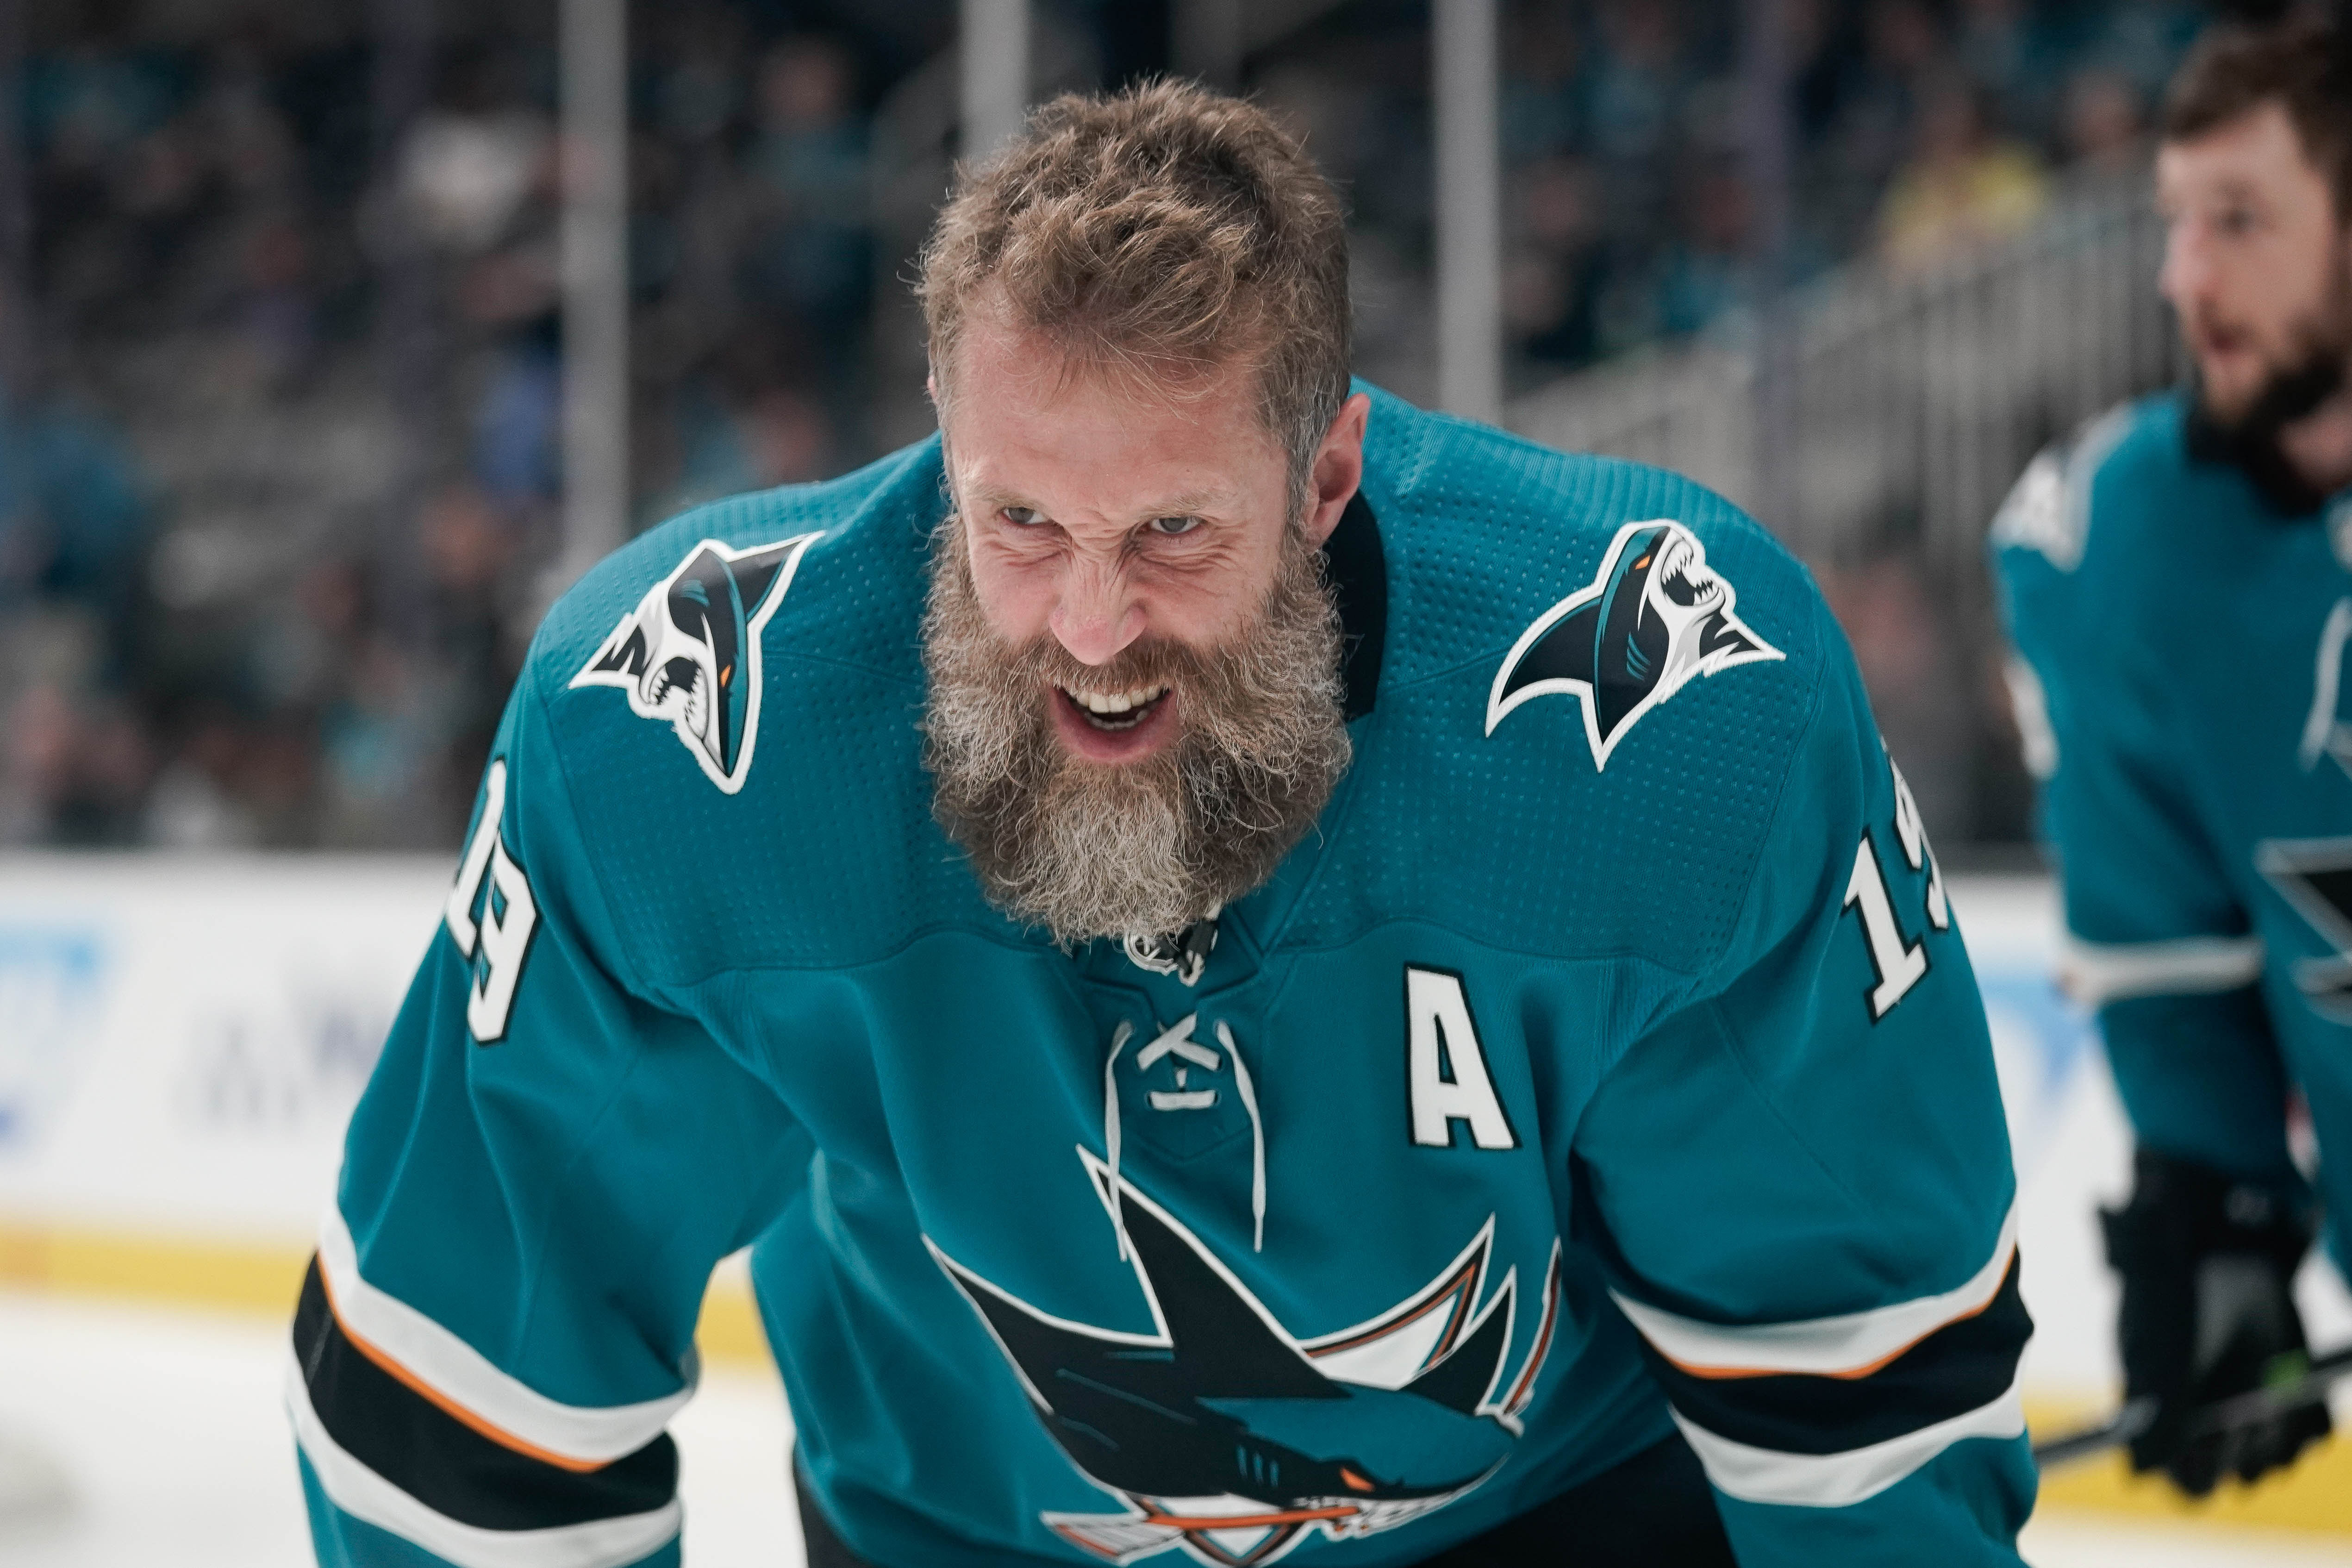 San Jose Sharks center Joe Thornton (19) warms up before the game against the Vegas Golden Knights in game seven of the first round of the 2019 Stanley Cup Playoffs at SAP Center at San Jose.